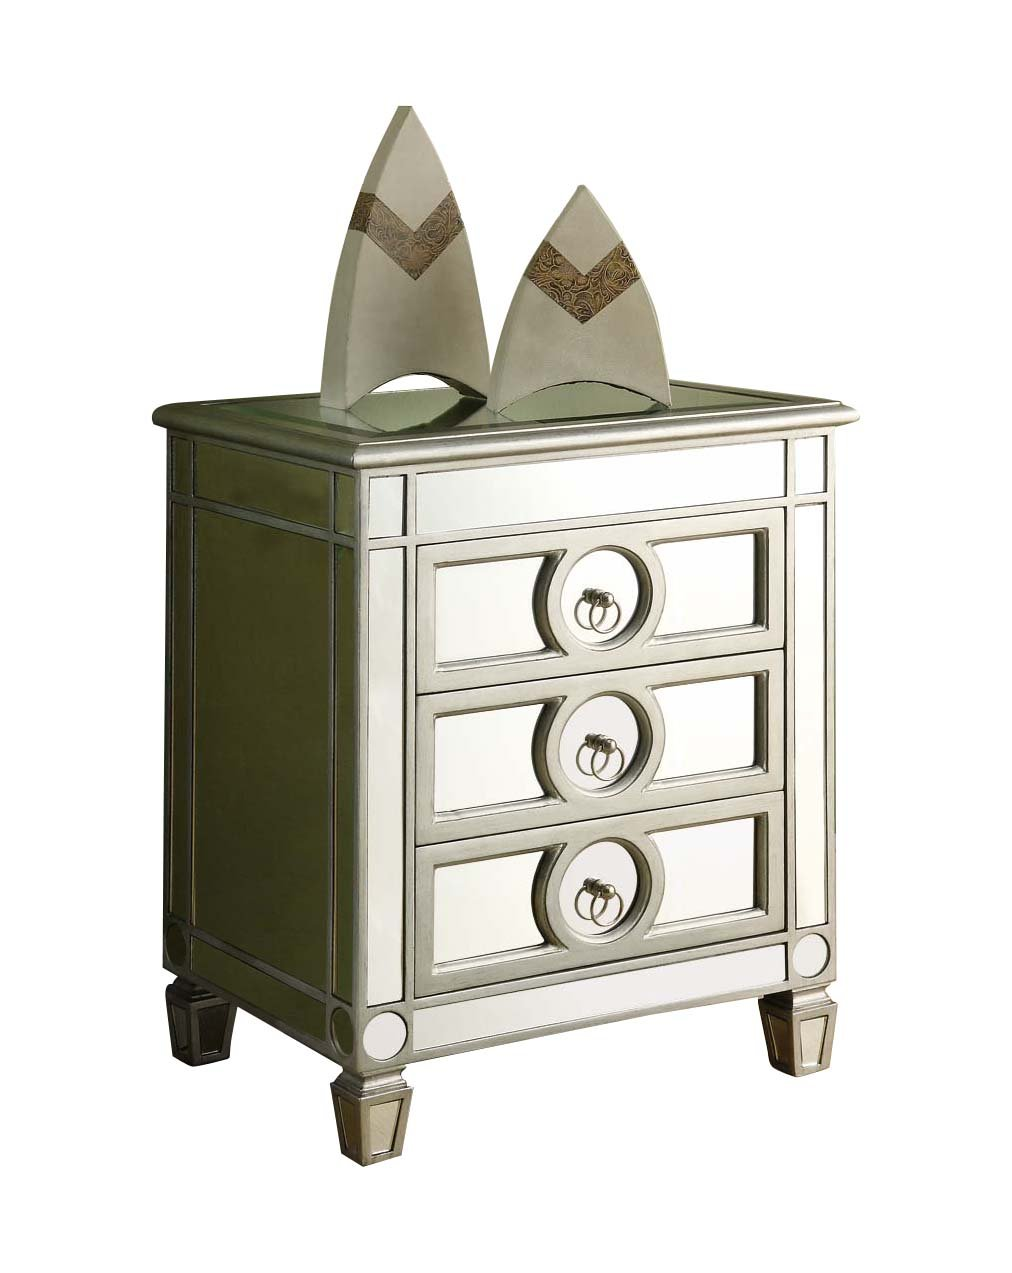 monarch specialties drawer accent table mirrored kitchen dining tall white console thin bedside cabinets large market umbrellas seahorse lamp silver outside wall clocks chairs for